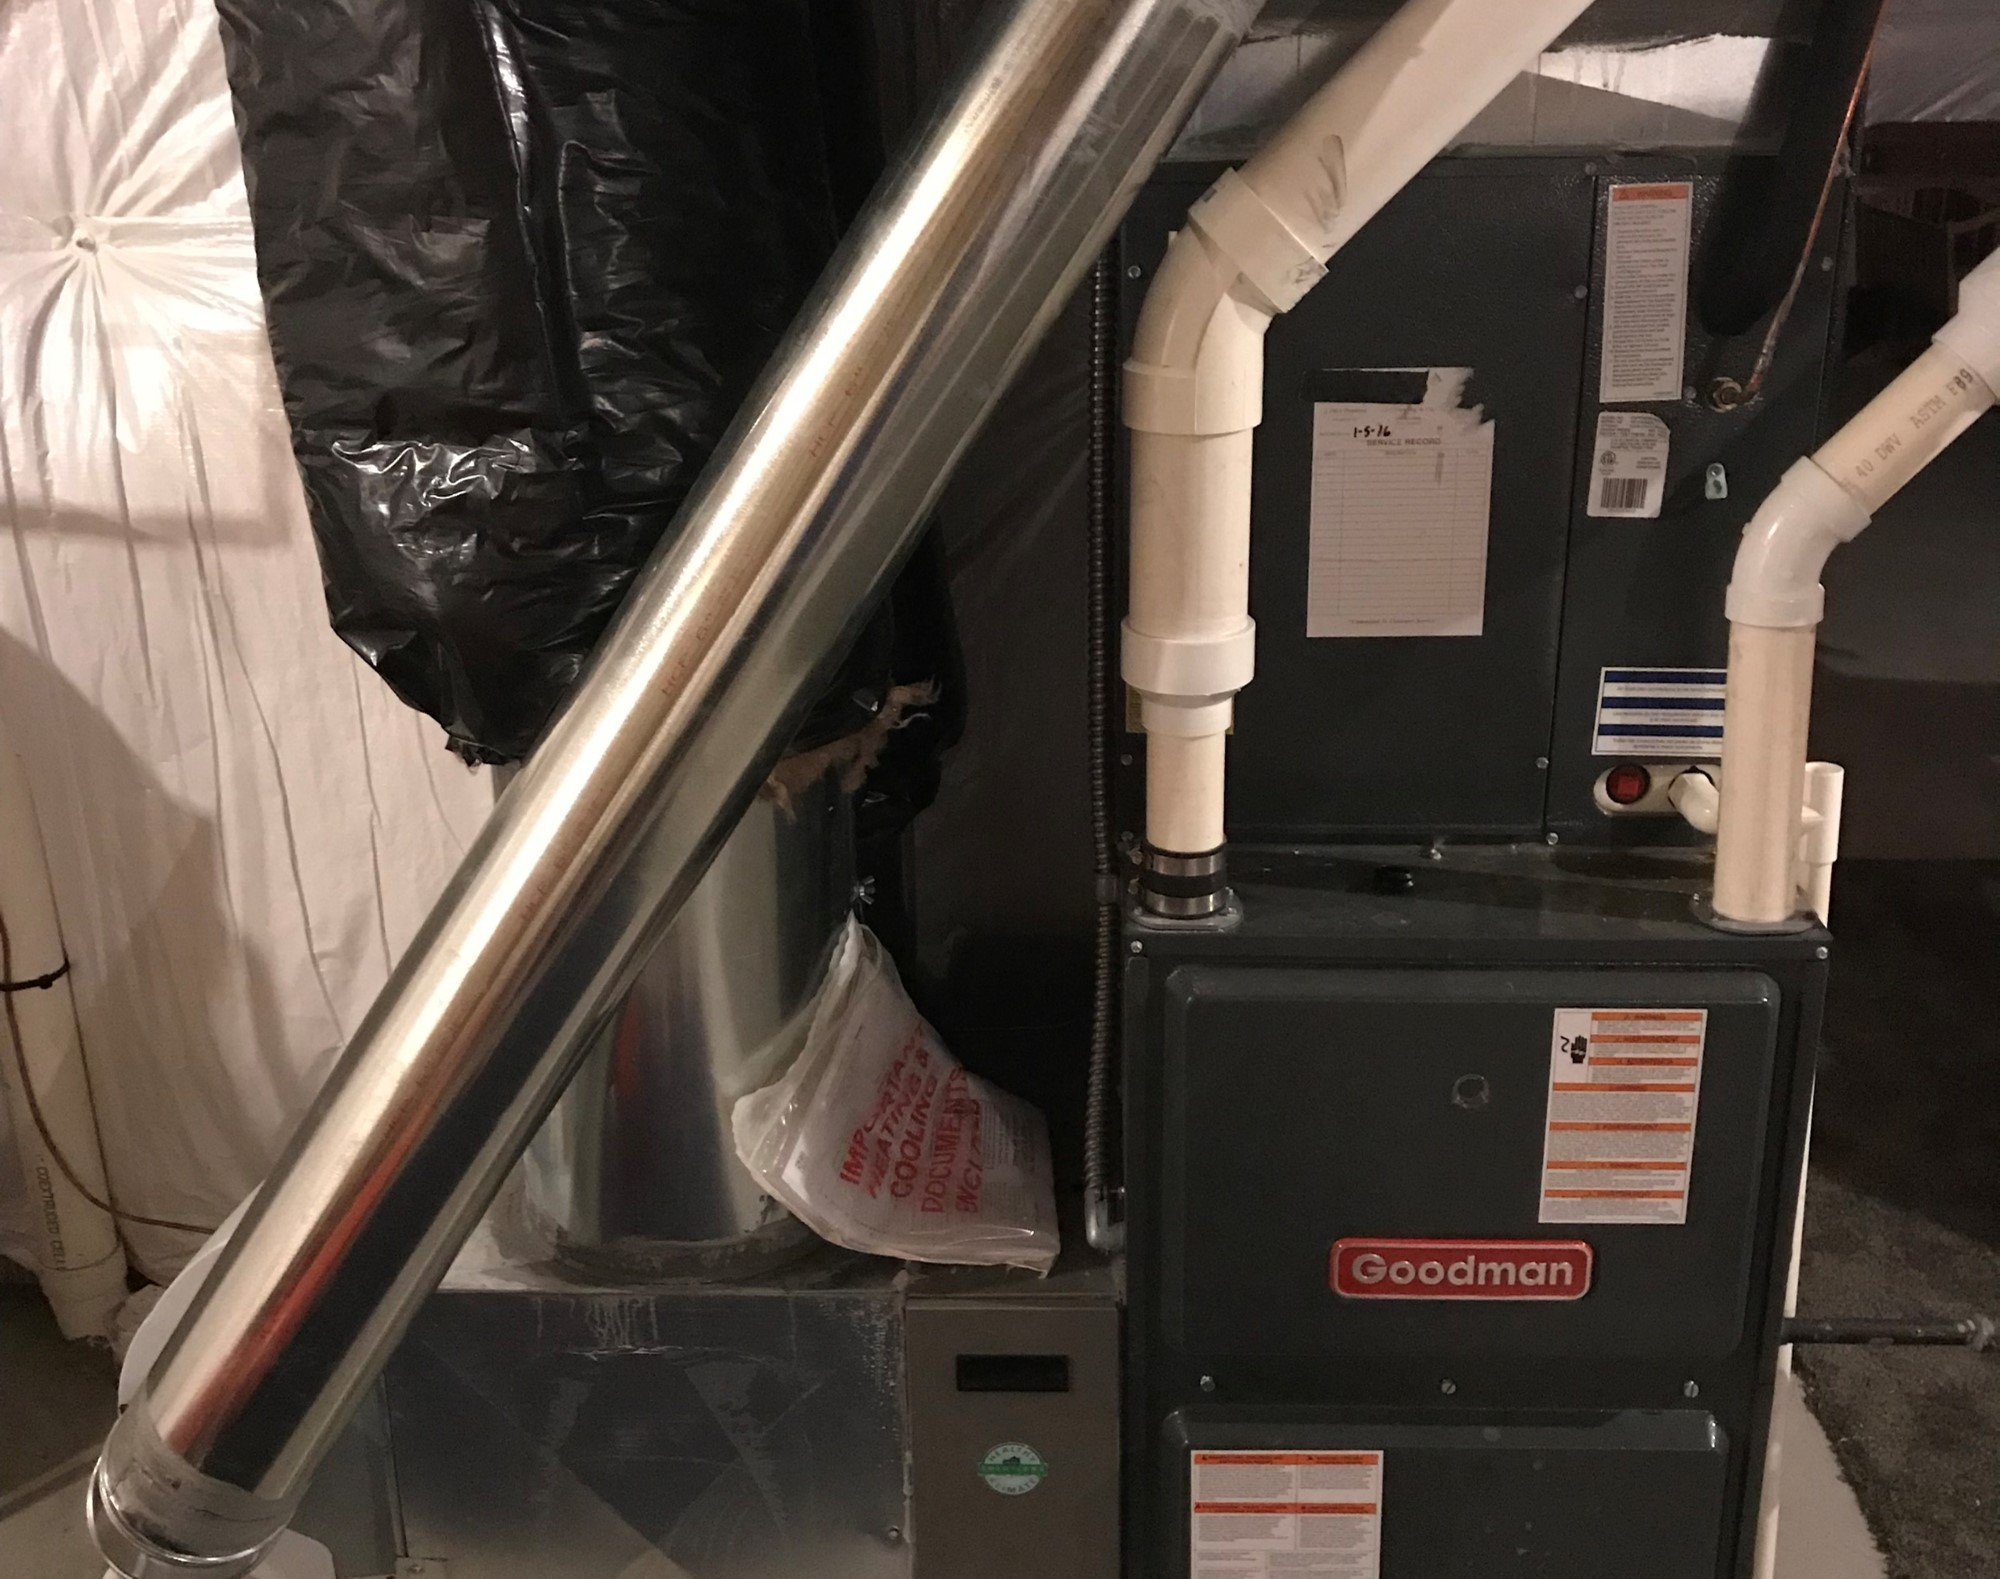 High Efficiency Furnace with PVC Piping for 95% Heat Retention within the Home